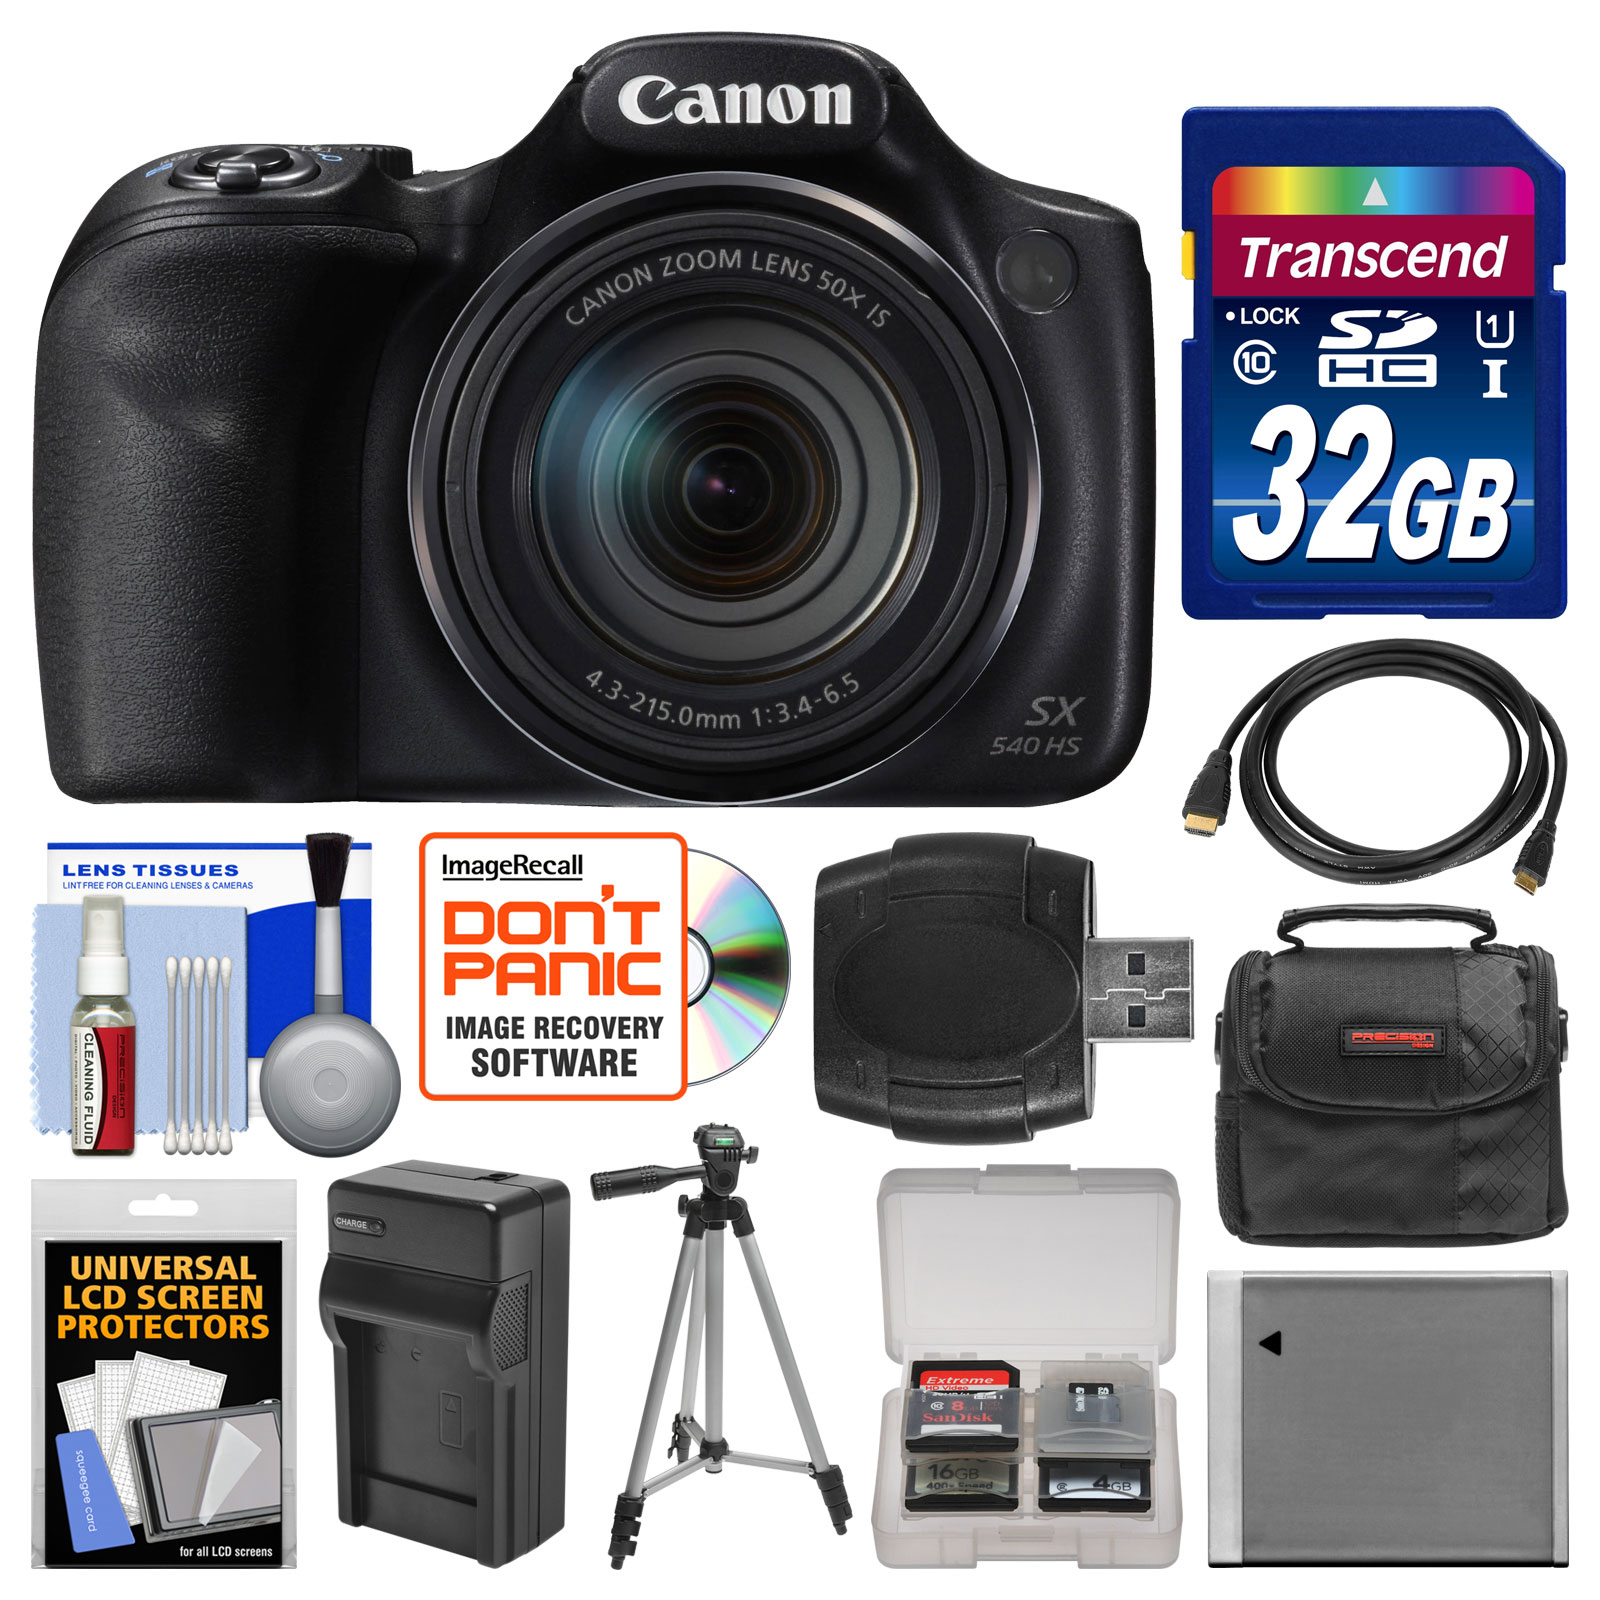 Canon PowerShot SX540 HS Wi-Fi Digital Camera with 32GB Card + Case + Battery & Charger + Tripod + Kit